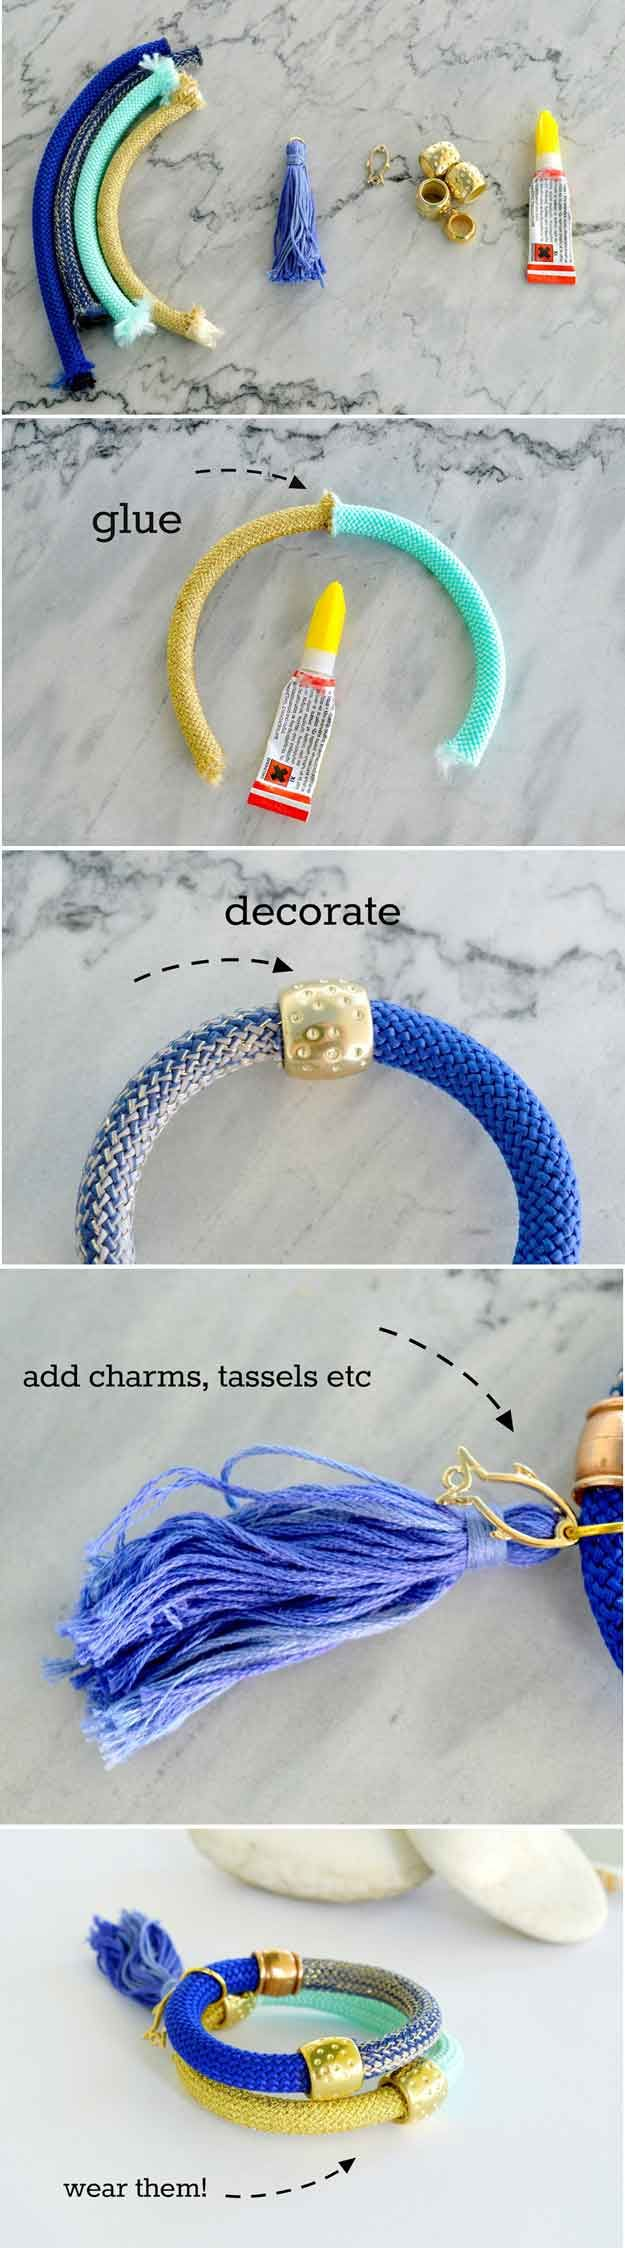 DIY pulseras de moda para niñas | http://artesaniasdebricolaje.ru/cheap-diy-jewelry-projects-for-girls/